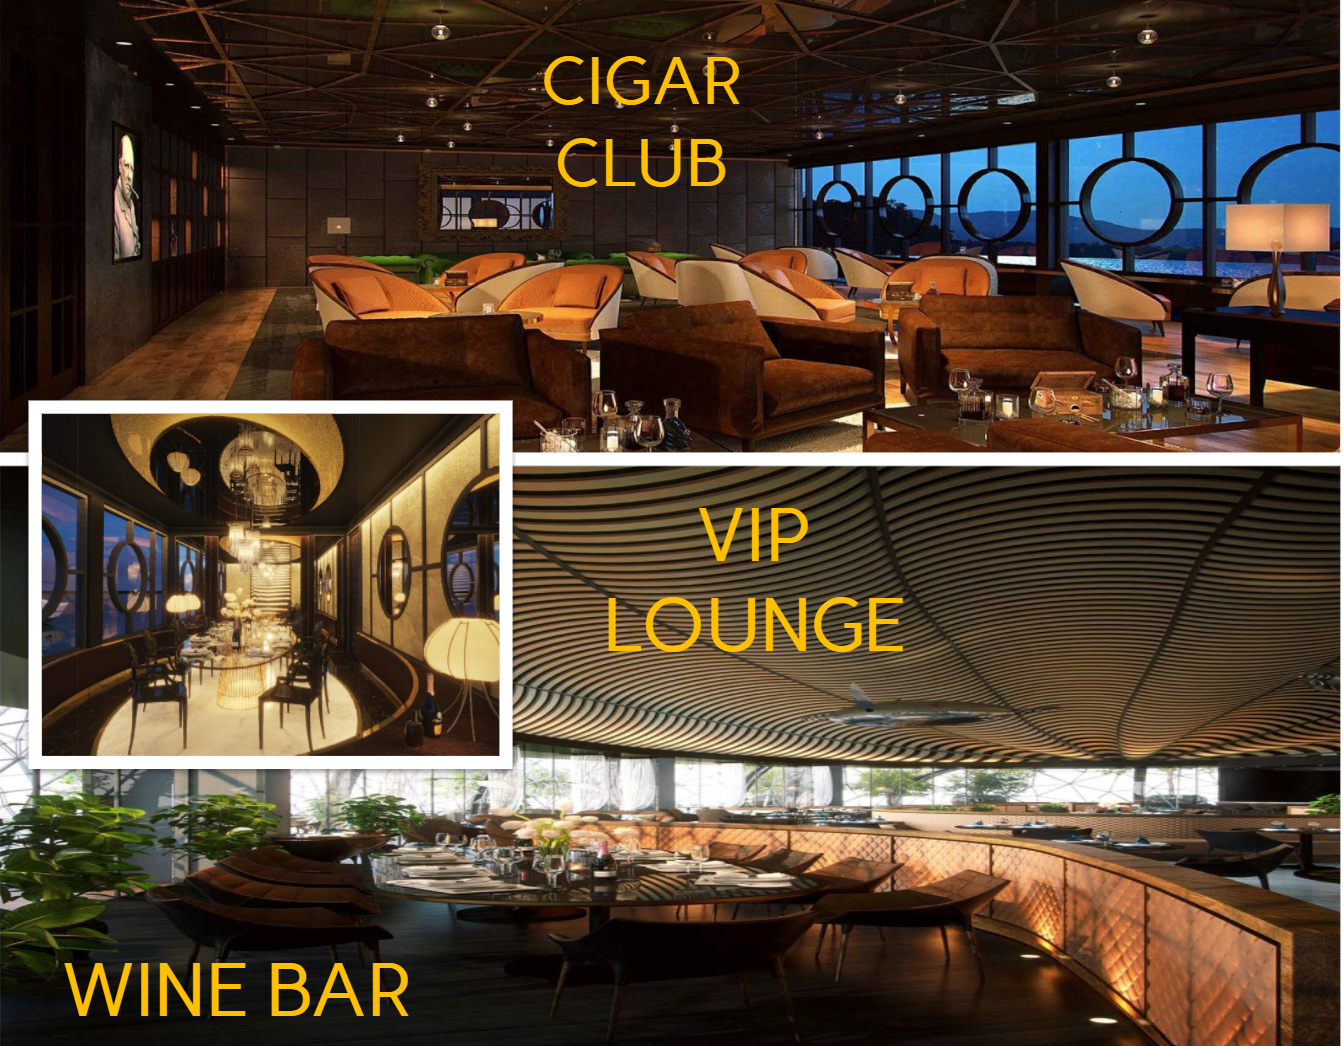 Cigar Club - Vip Lounge - Wine Bar - Marina Club